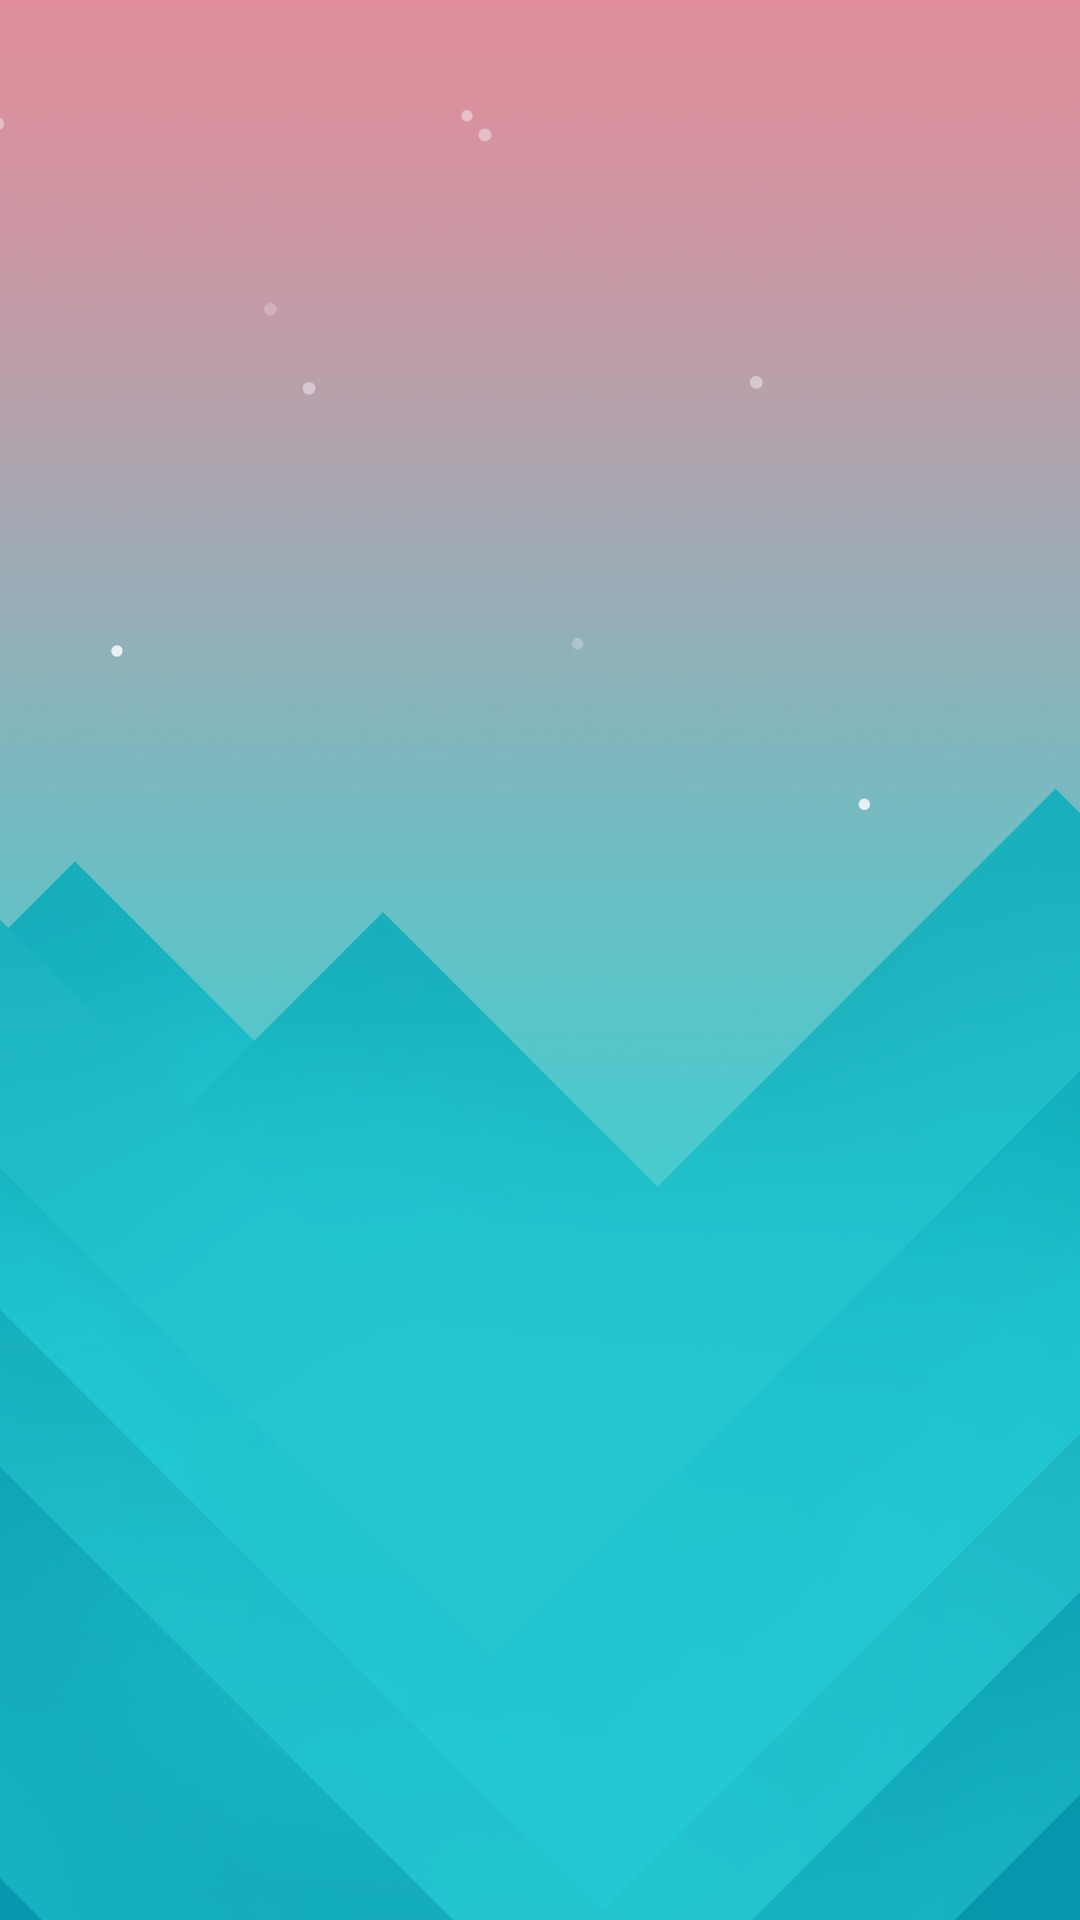 Video Game Monument Valley 1080x1920 Mobile Wallpaper